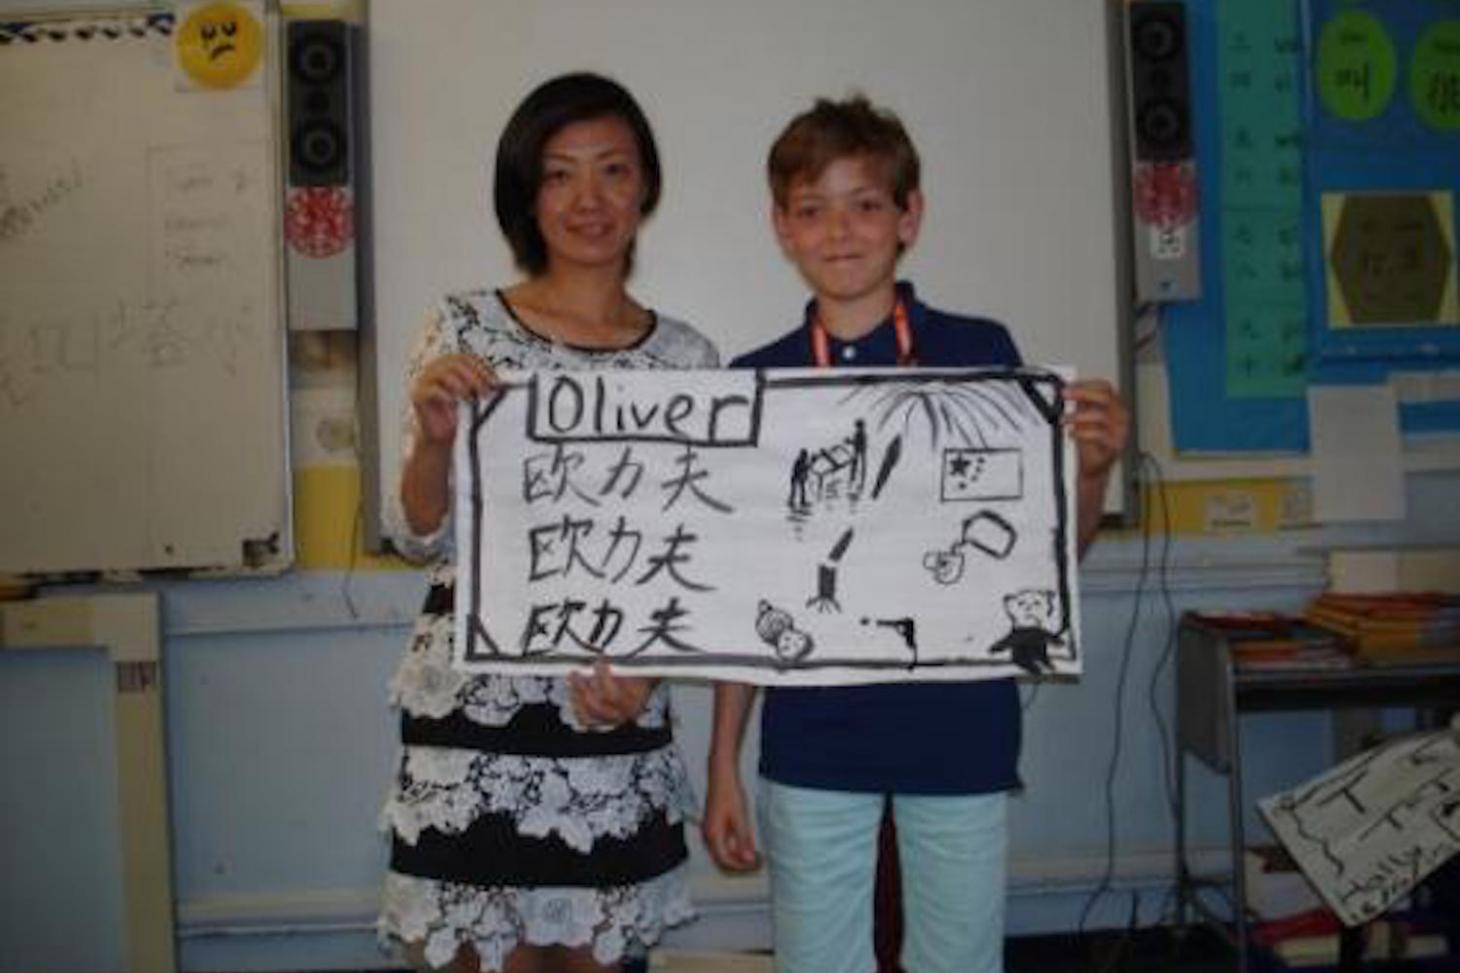 A student showing off his Chinese name that he wrote